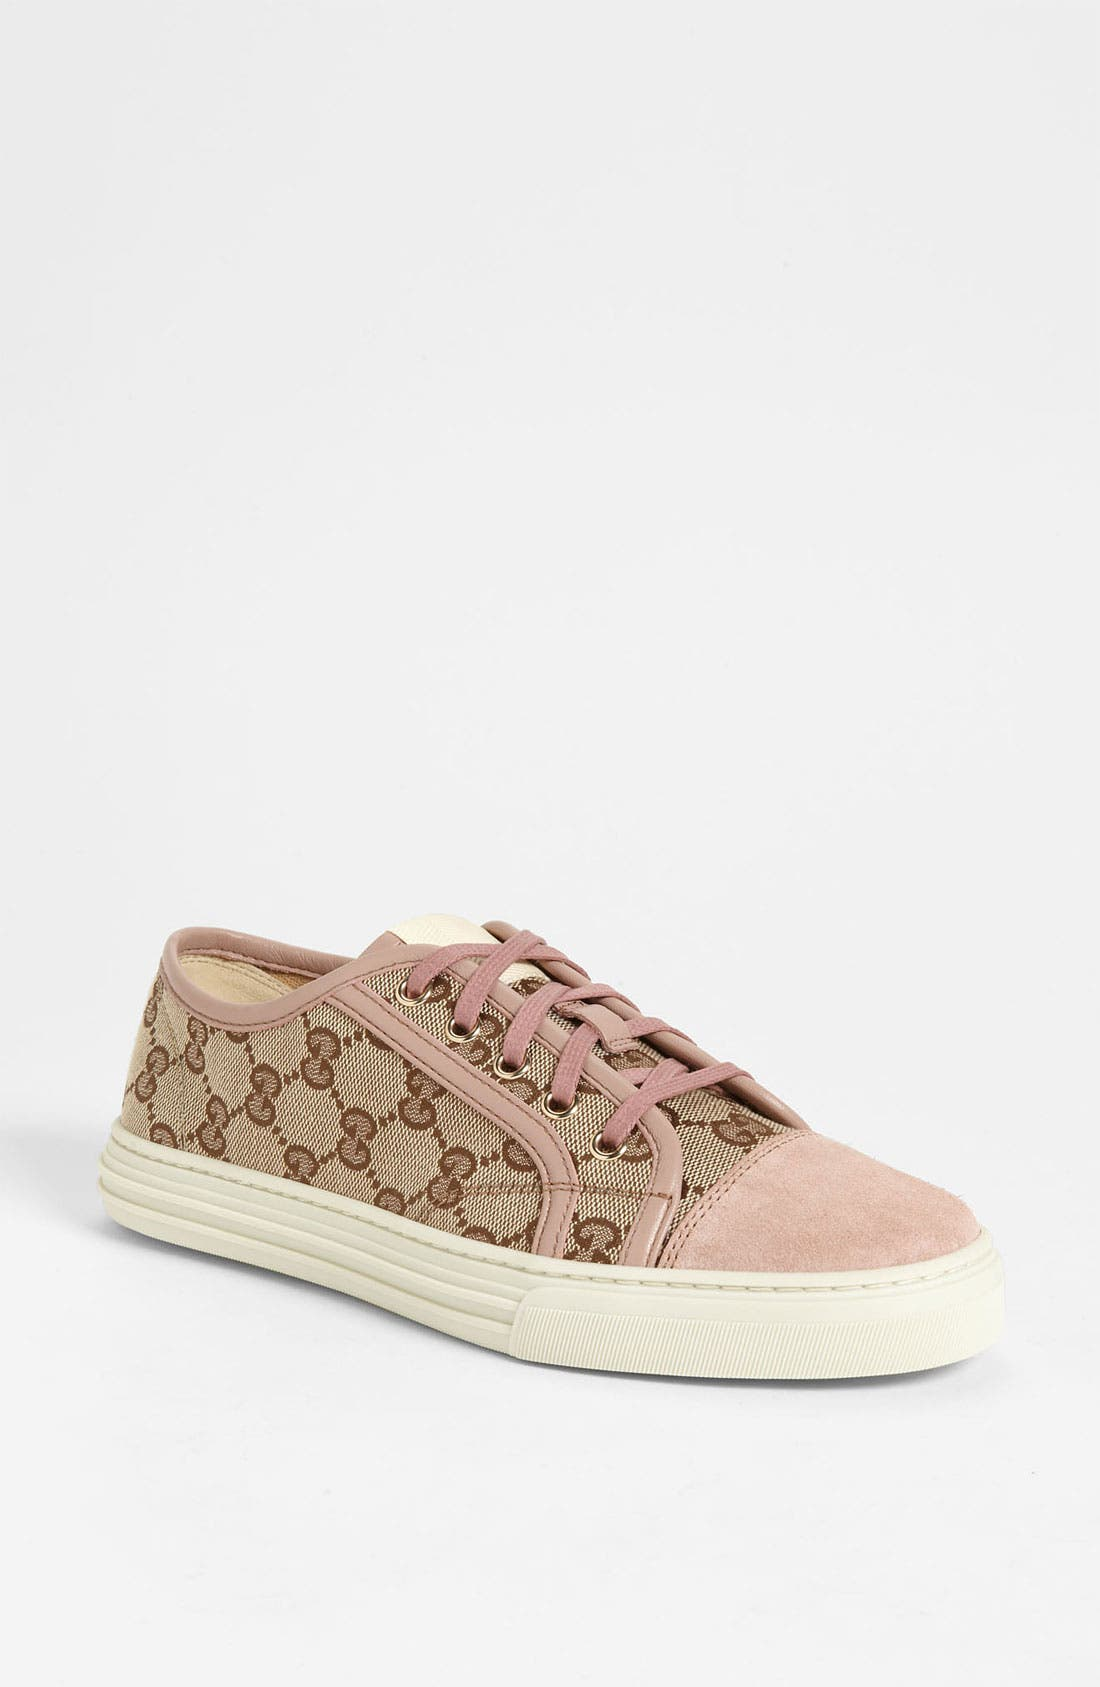 Alternate Image 1 Selected - Gucci 'California Low' Sneaker